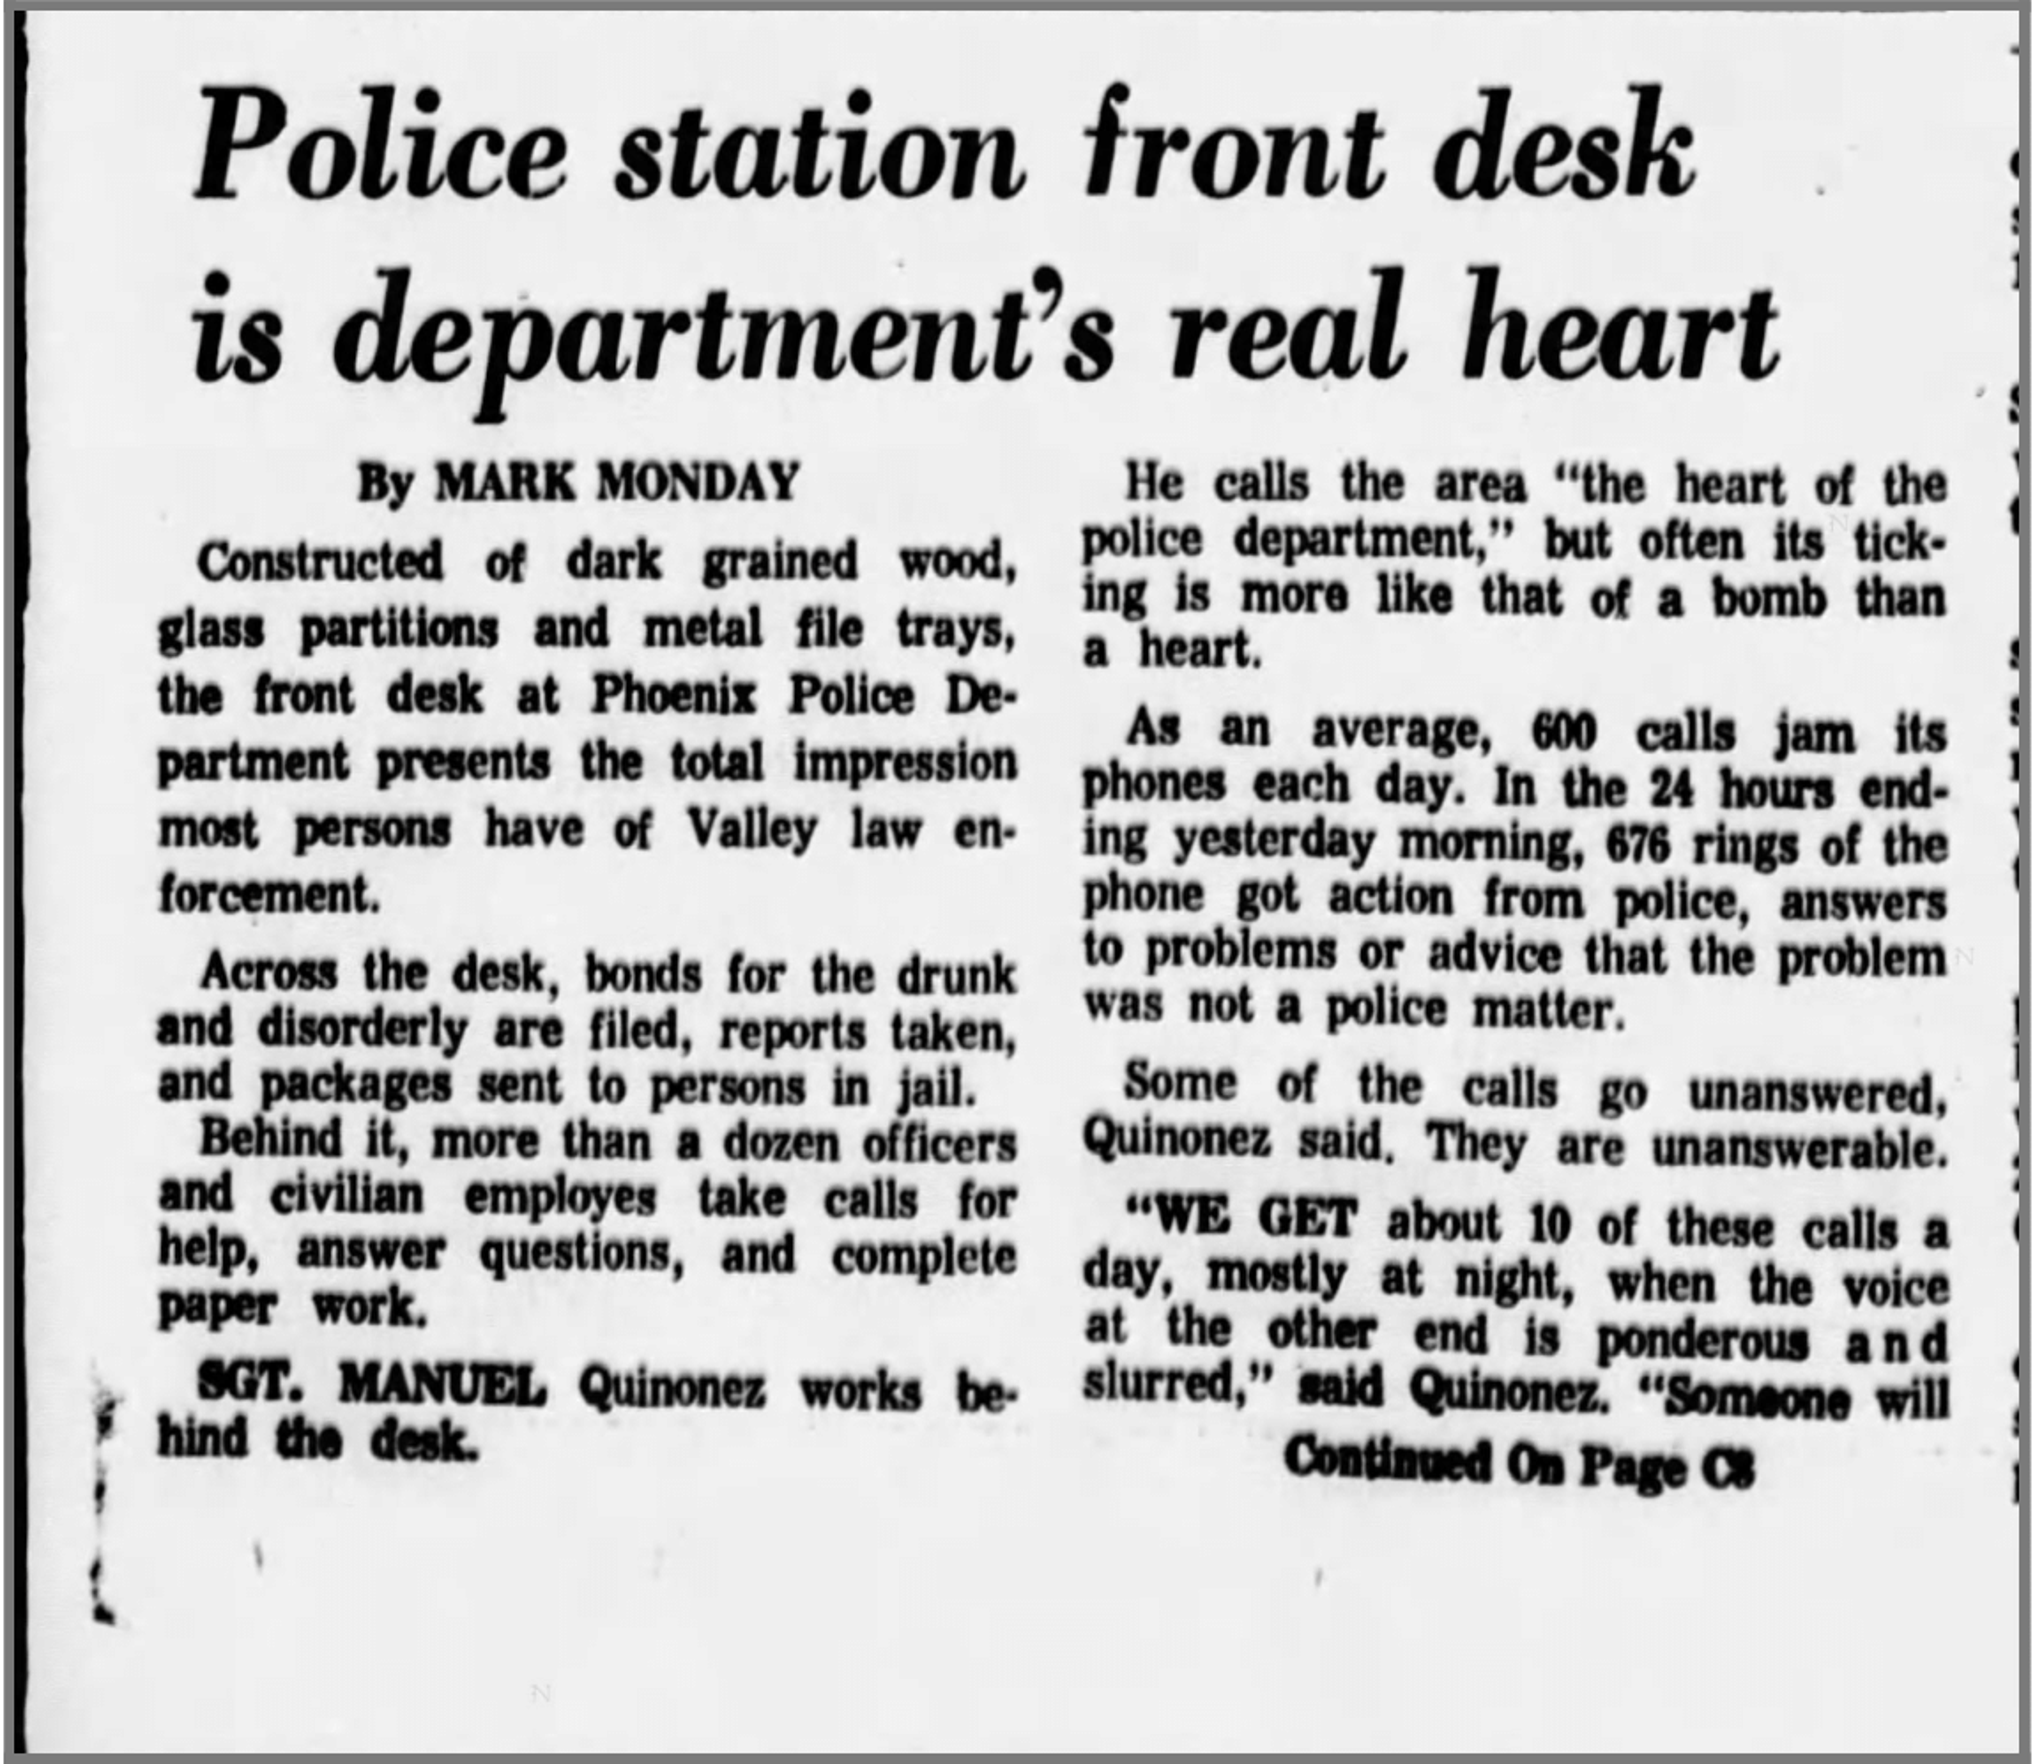 """A clipping from The Arizona Republic on Oct. 6, 1968, about Manny Quiñonez being reassigned to the desk following his second shooting. He was the first """"call back"""" sergeant assigned with answering the phones with new tips."""